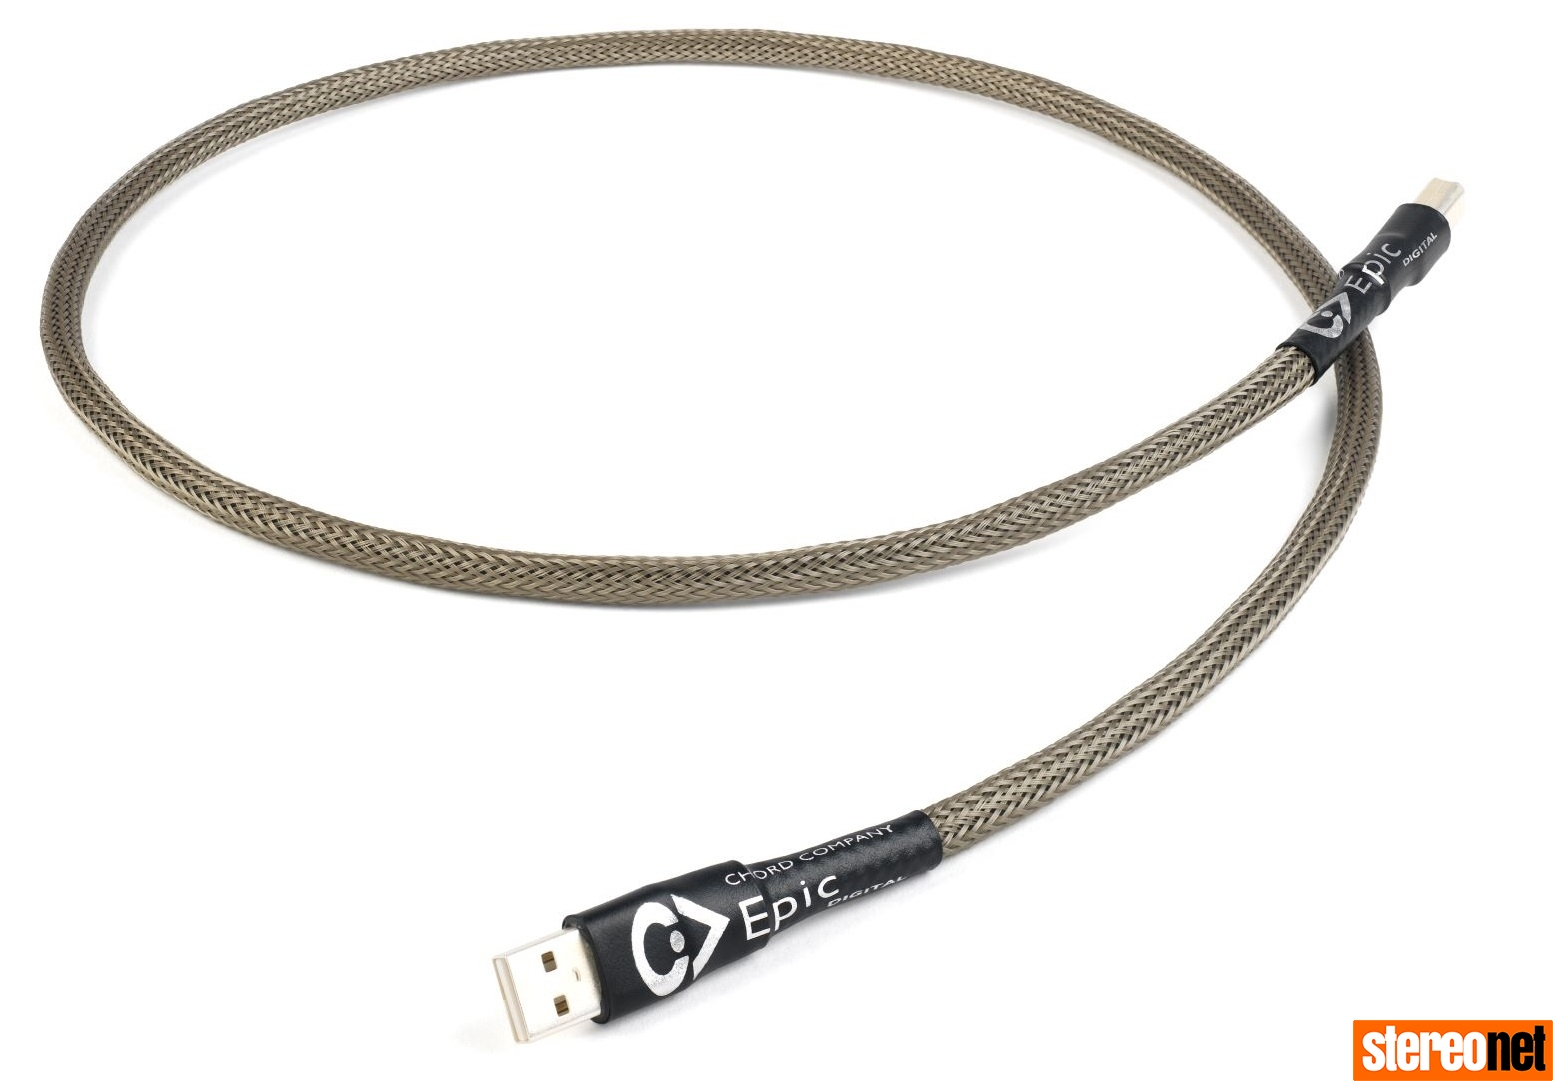 Chord Epic USB Cable